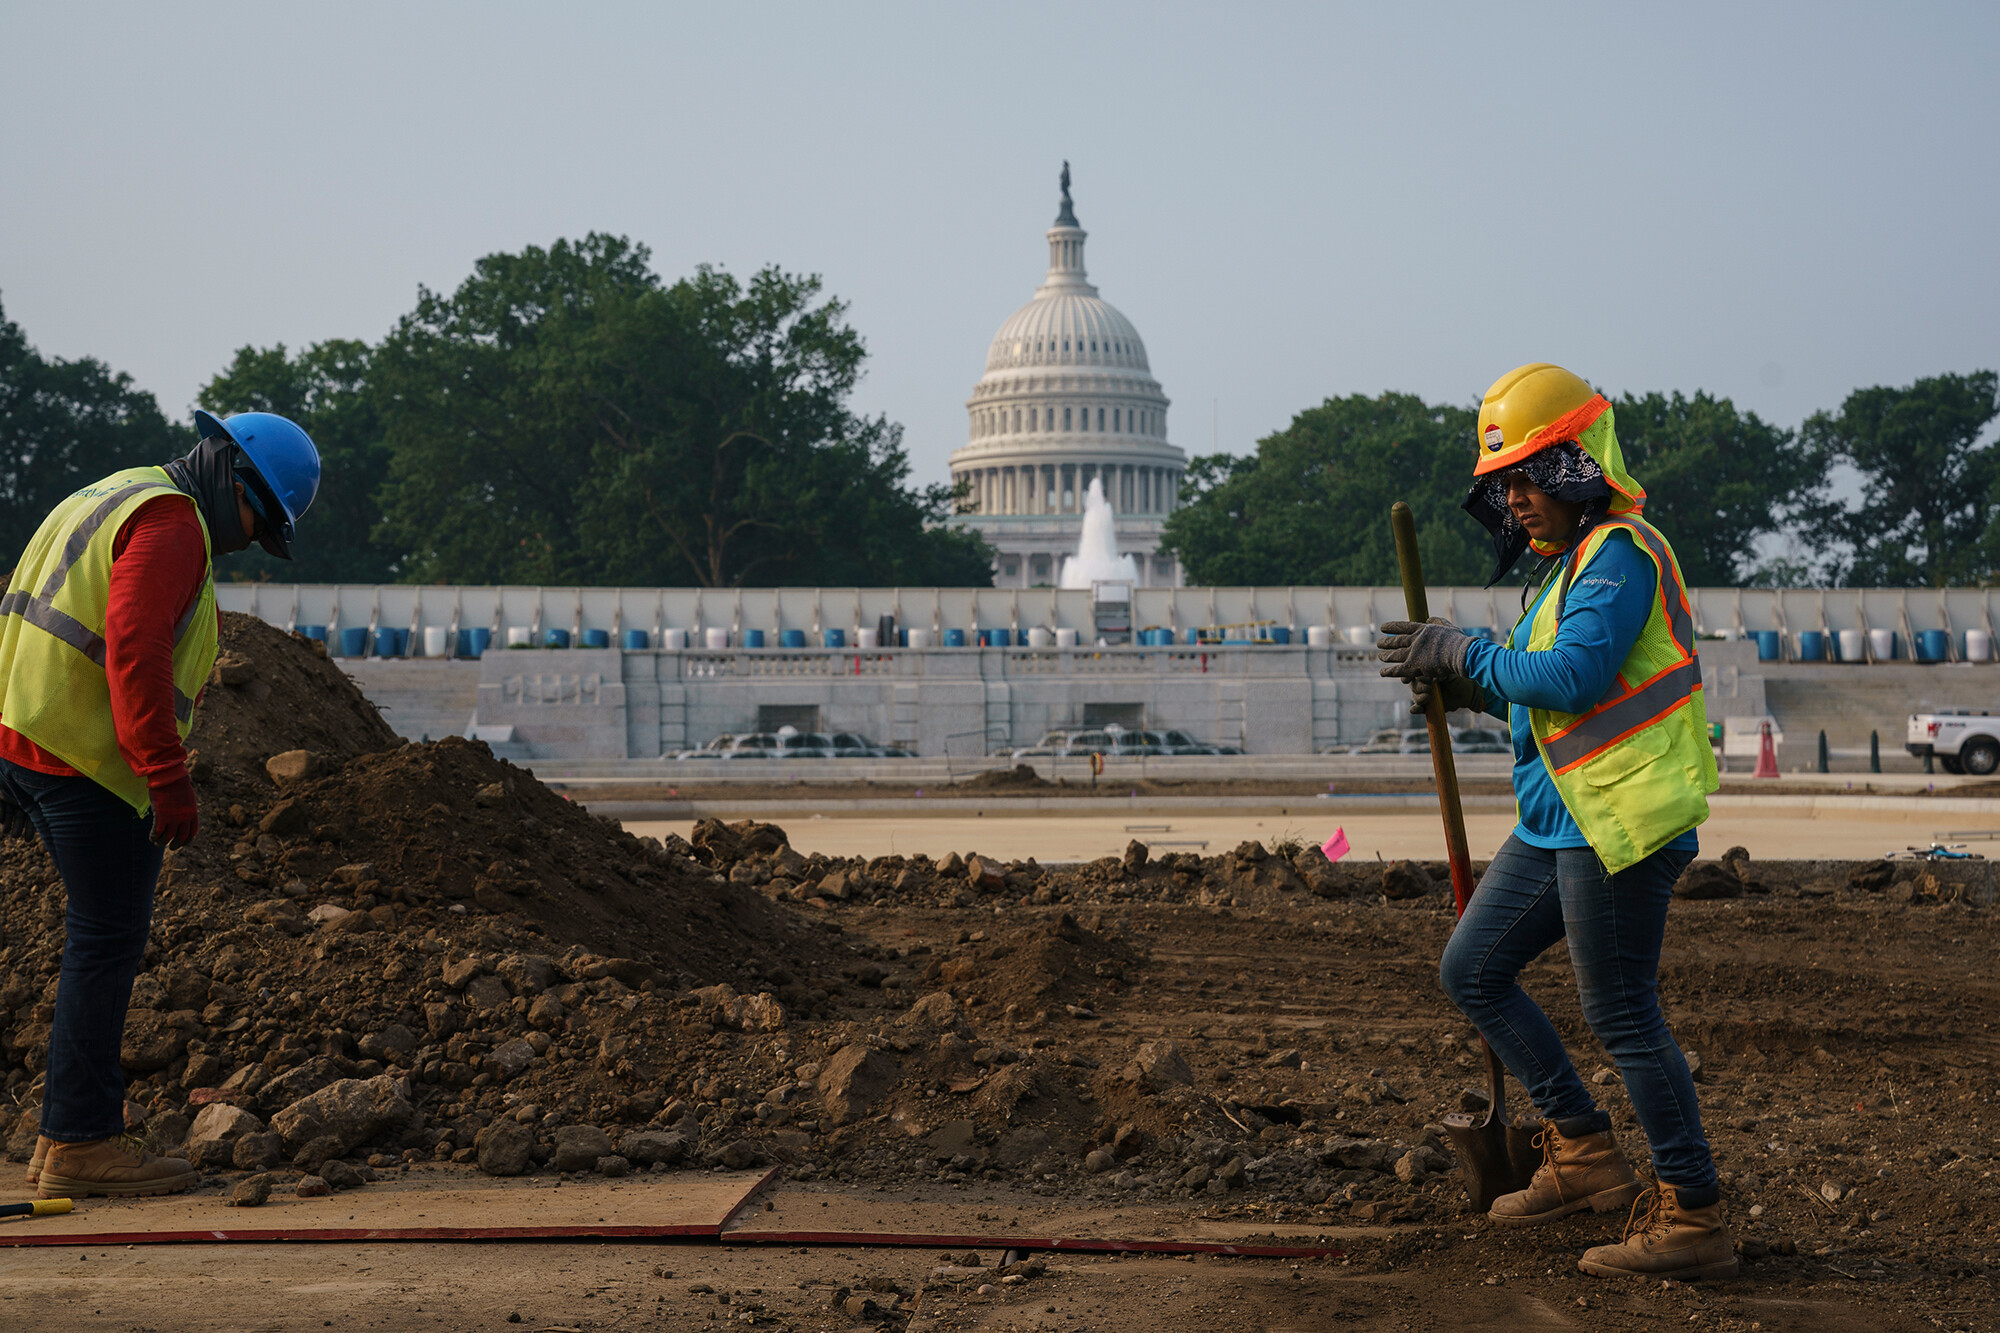 J. Scott Applewhite/APWorkers repair a park near the Capitol in Washington on July 21 as senators struggle to reach a compromise over how to pay for nearly $1 trillion in public works spending